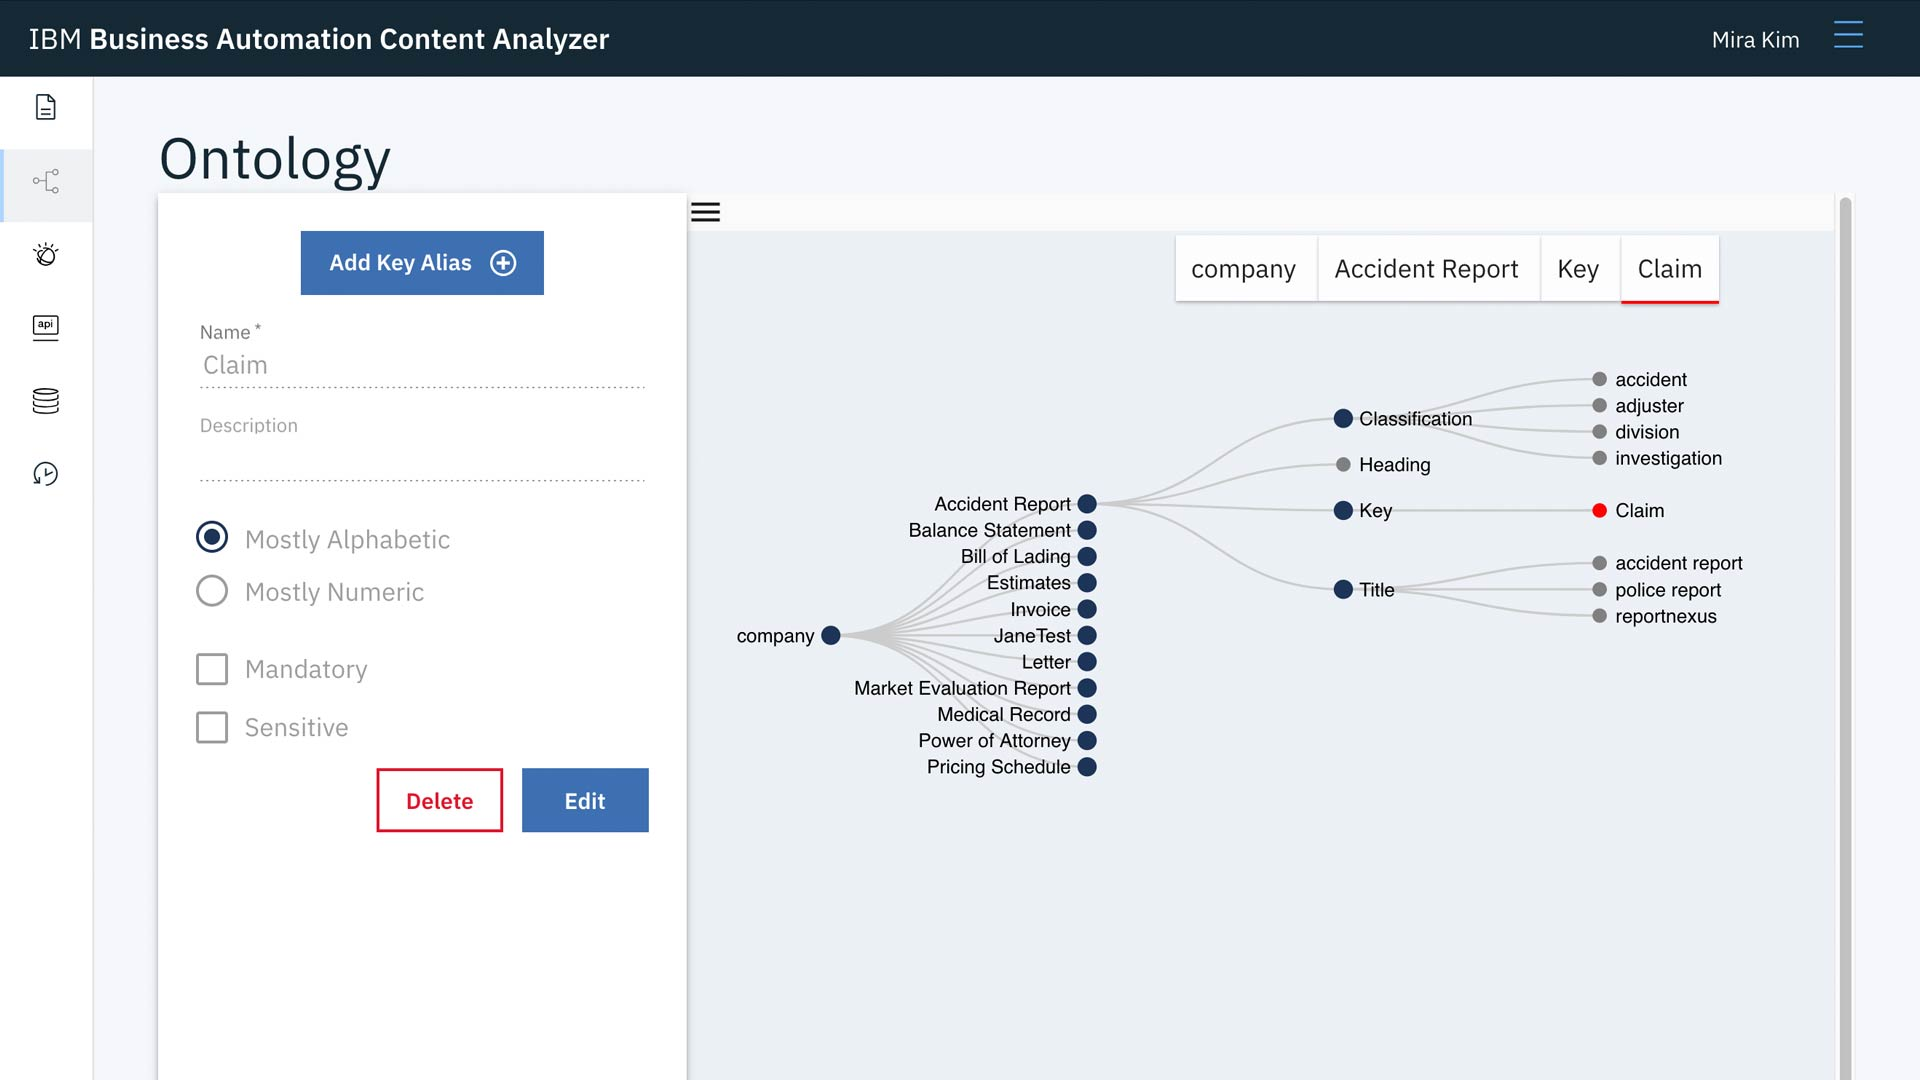 IBM Business Automation Content Analyzer interface